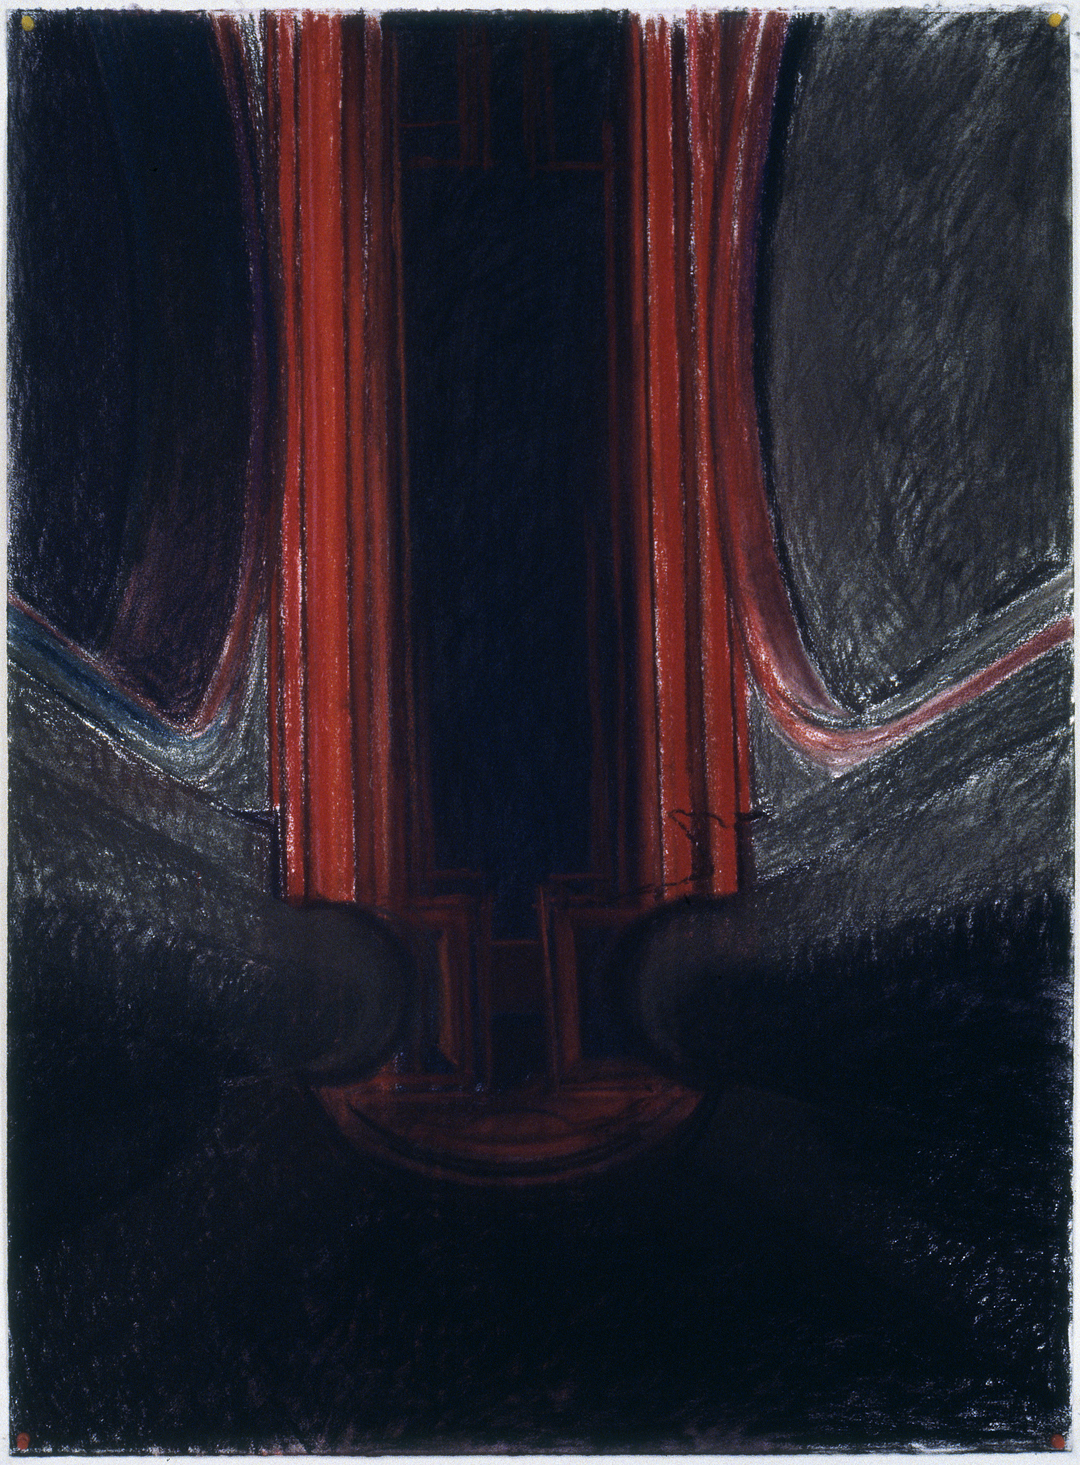 Untitled #8  (1976, pastel on paper, 42 x 36 inches)